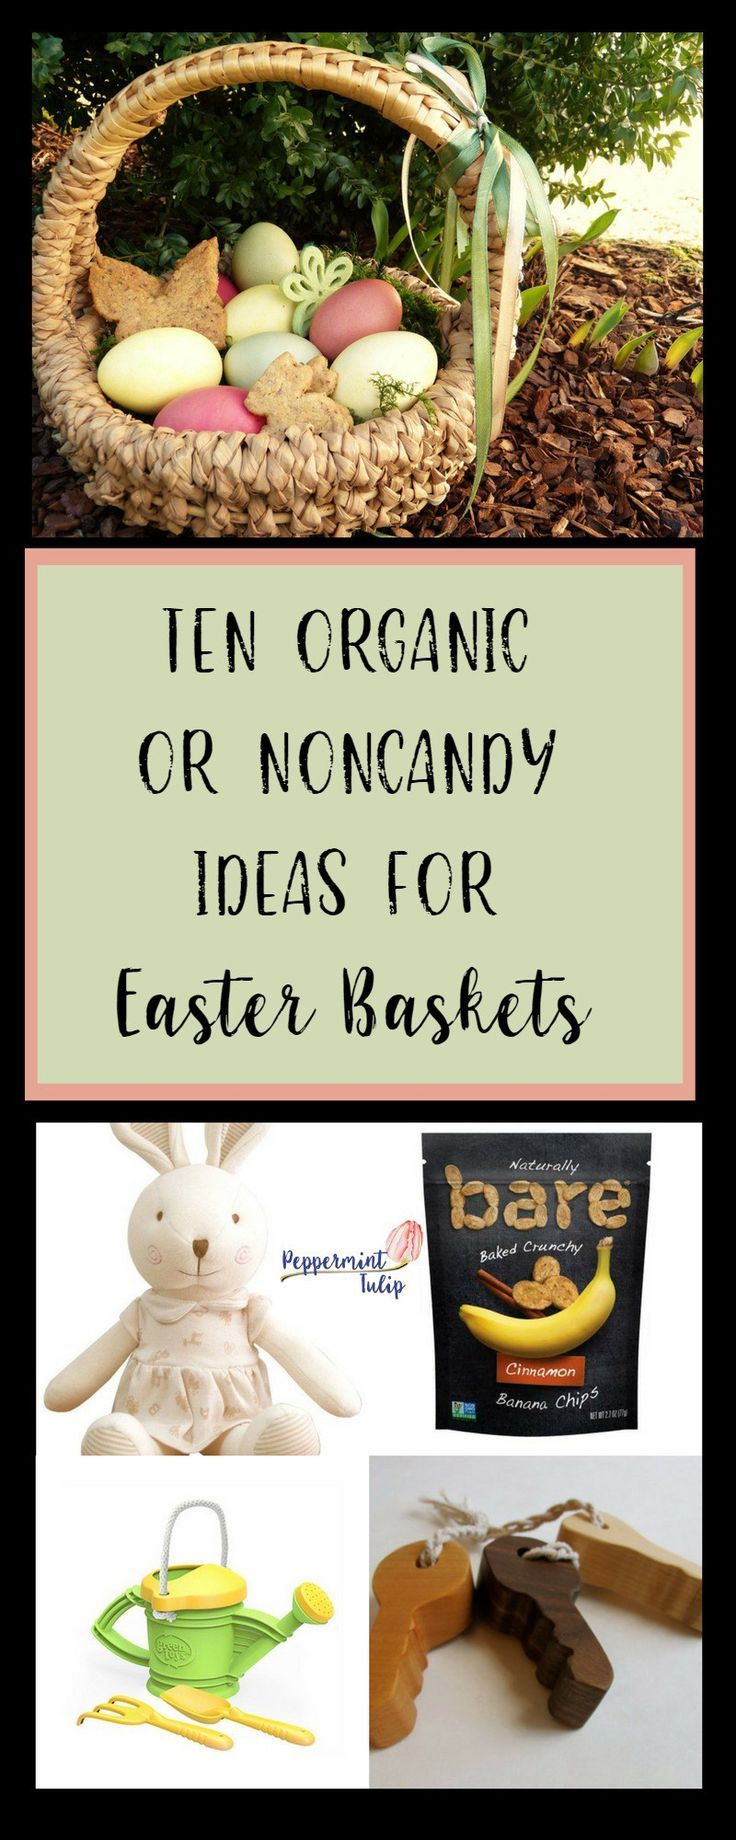 A list of products to create an almost entirely organic Easter basket. Toys, beauty products, food and more. Plus healthier snacks to put in eggs.